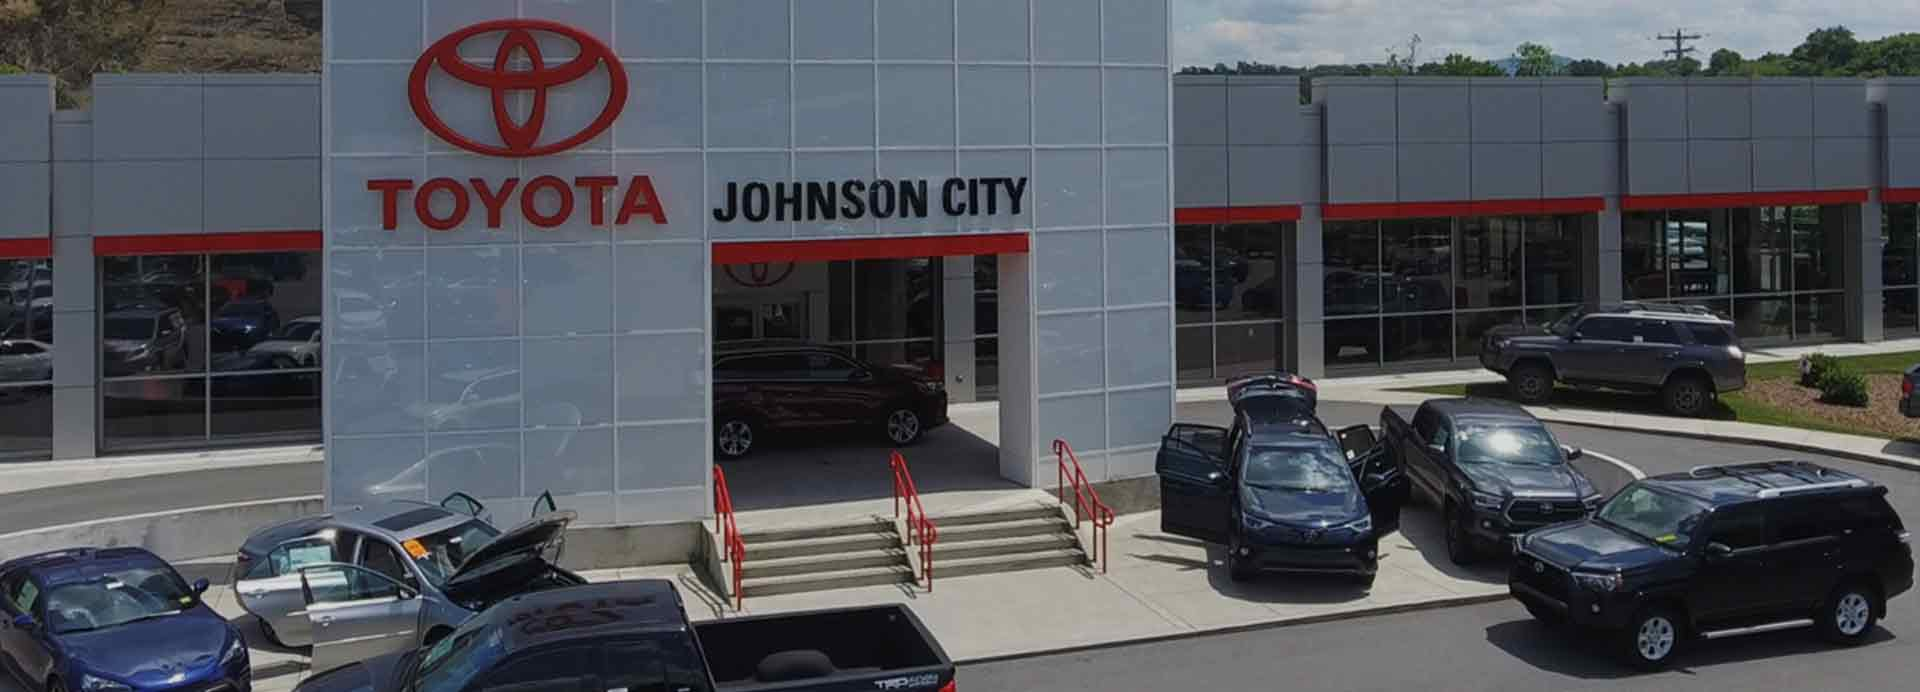 Why Buy from Johnson City Toyota?